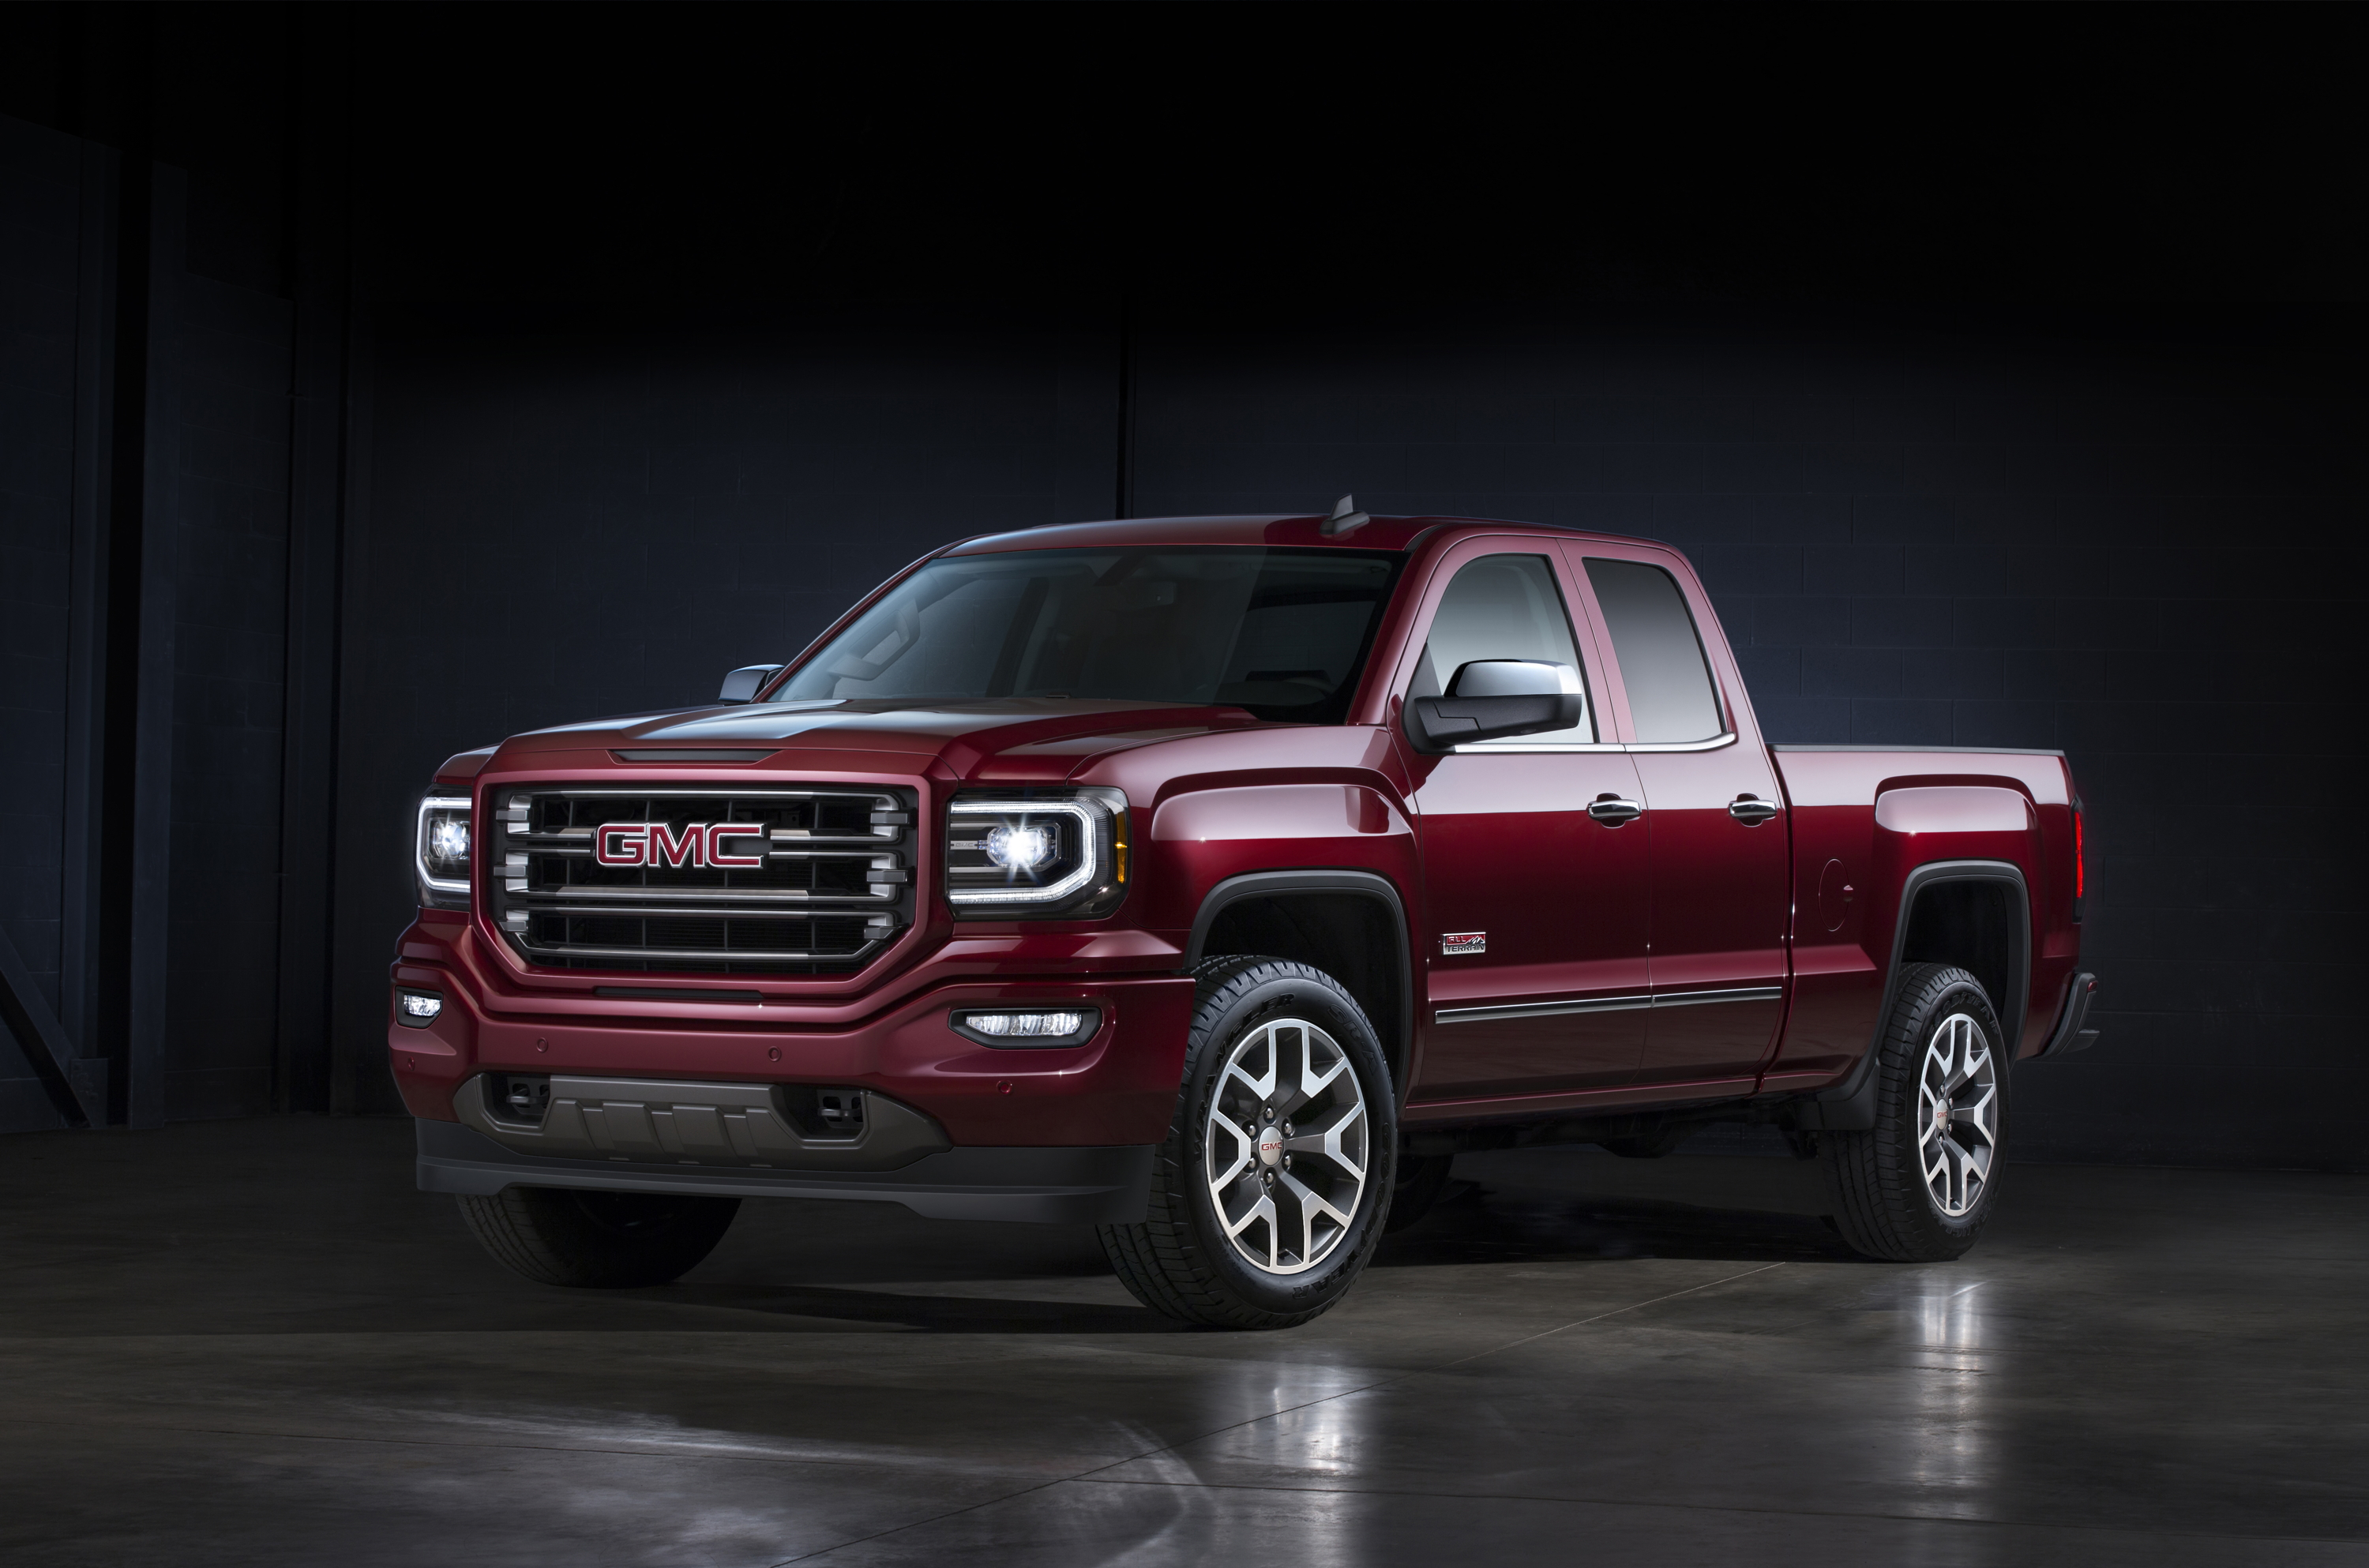 2017 Gmc Sierra All Terrain >> Gmc Pressroom United States Images